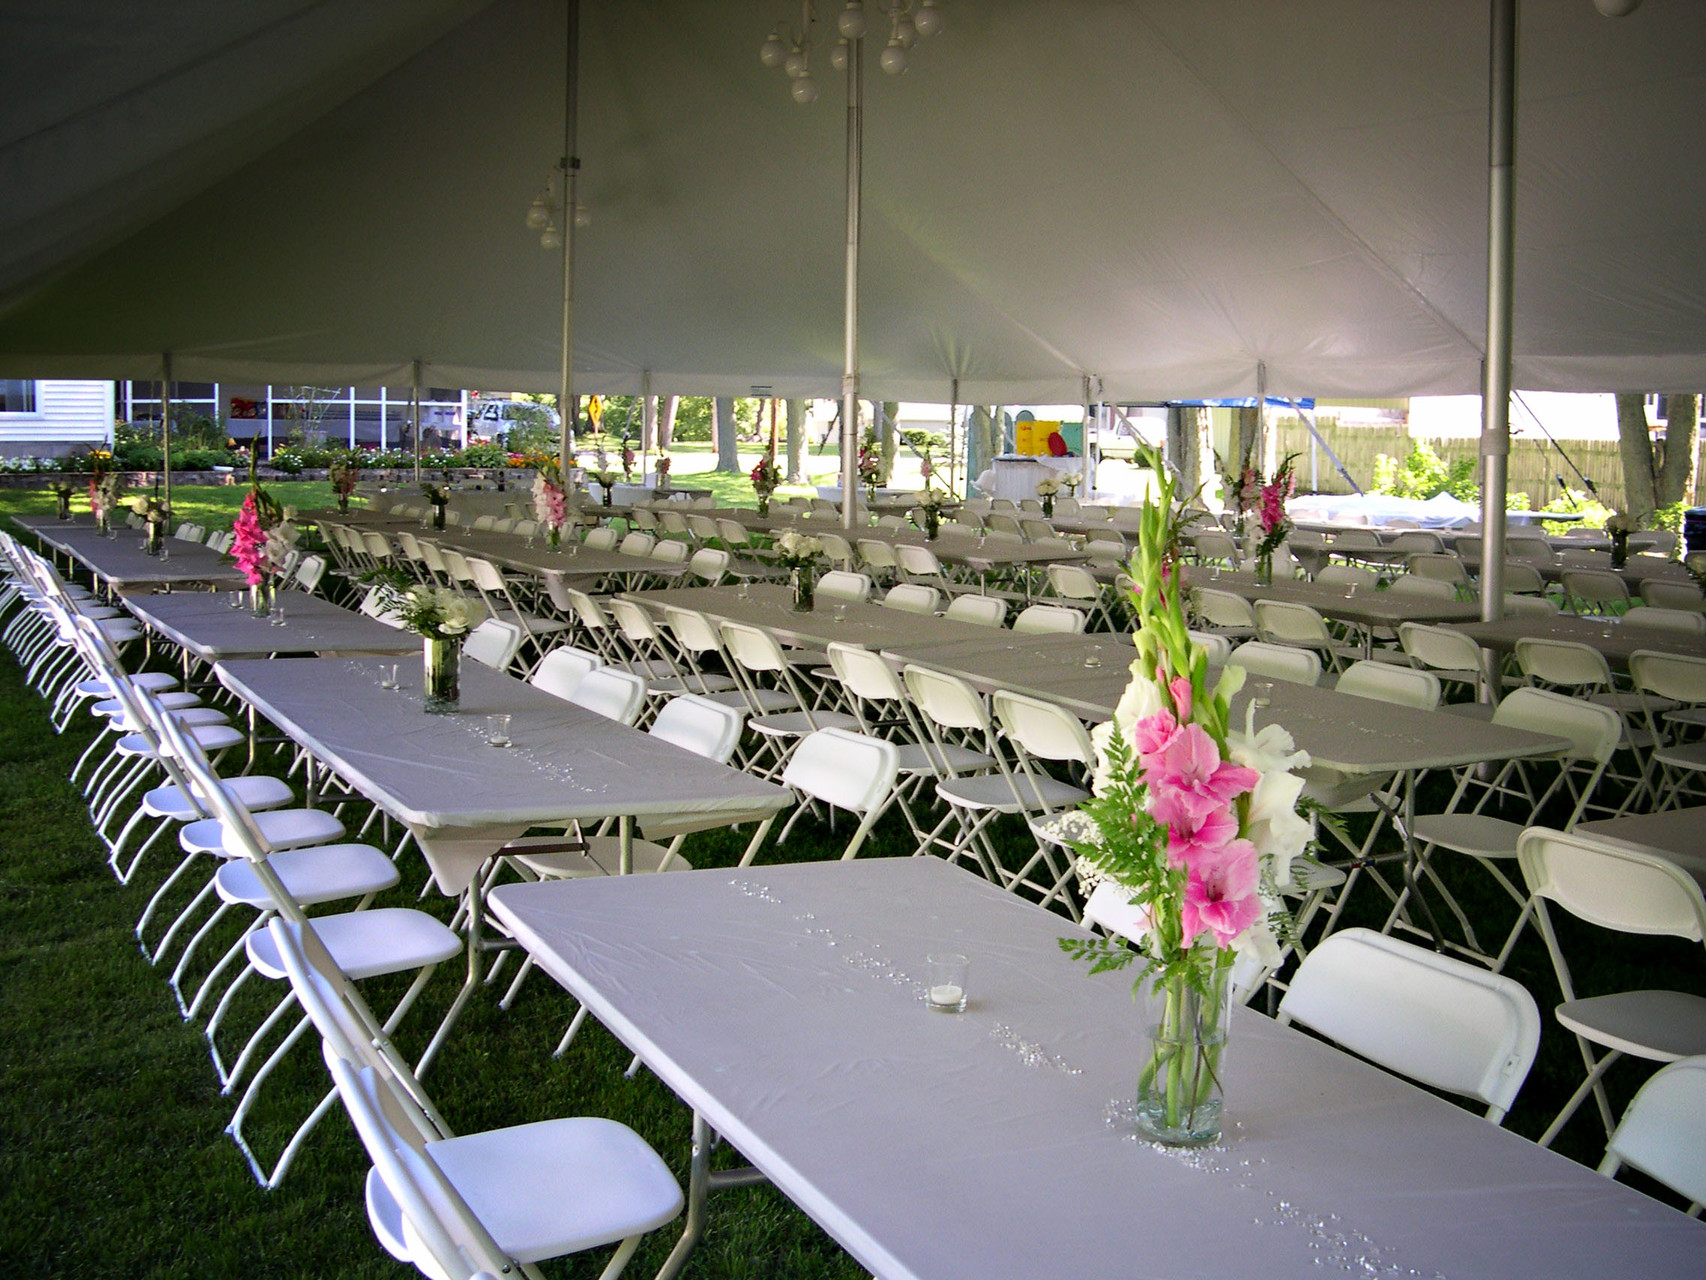 40 x 80 Wedding tent, 8ft banquet tables, white chairs and chandeliers